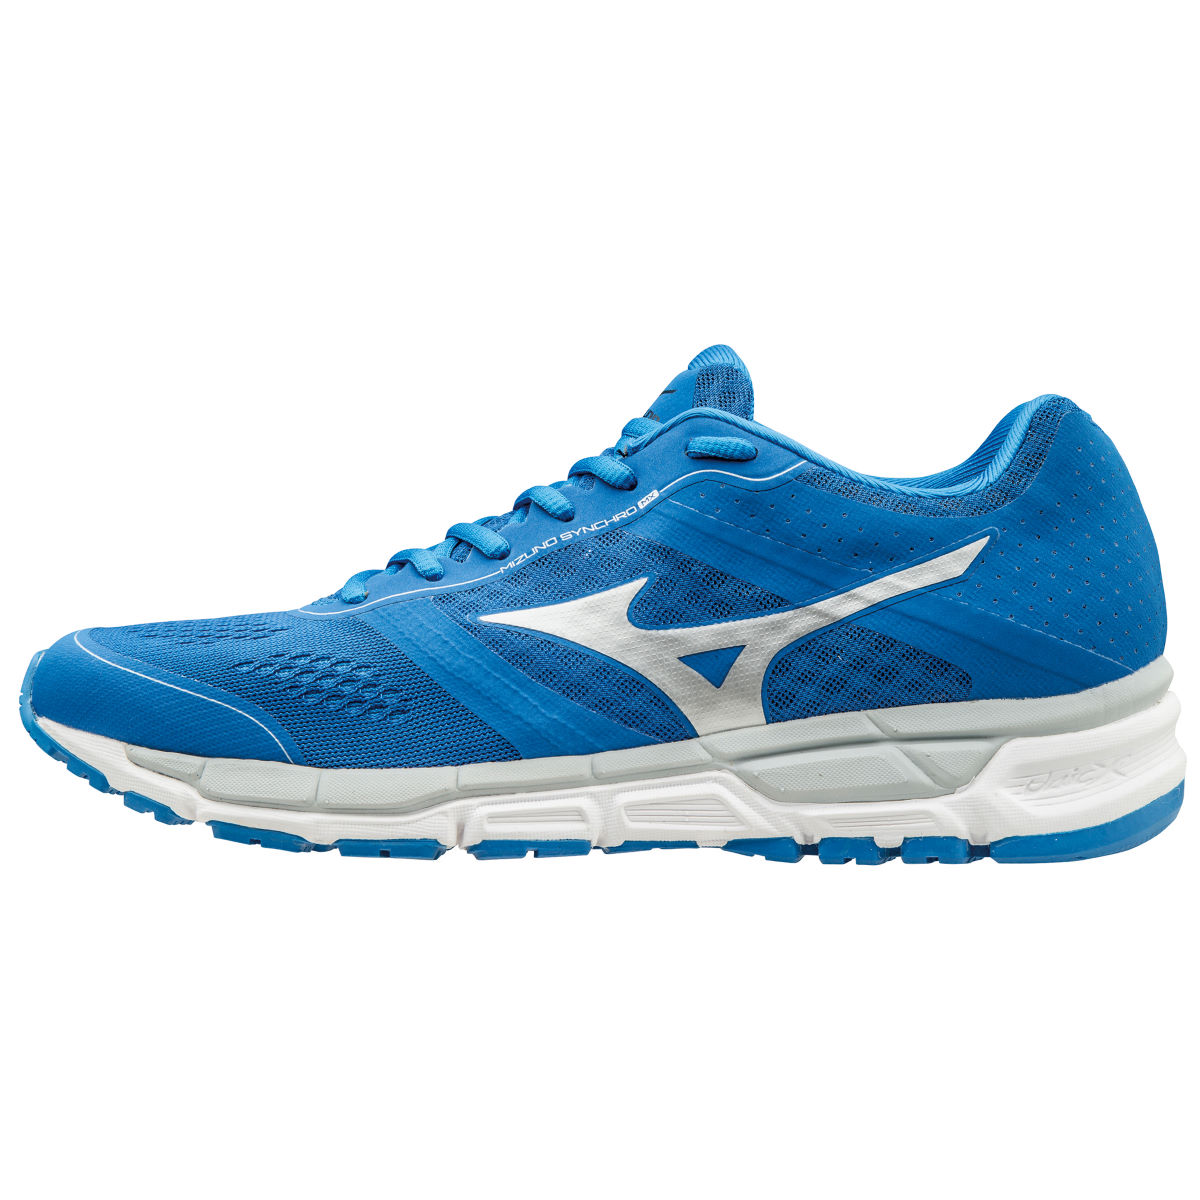 Chaussures Mizuno Synchro MX (PE16) - 12 UK Blue/Silver/High-Ris Chaussures de running amorties